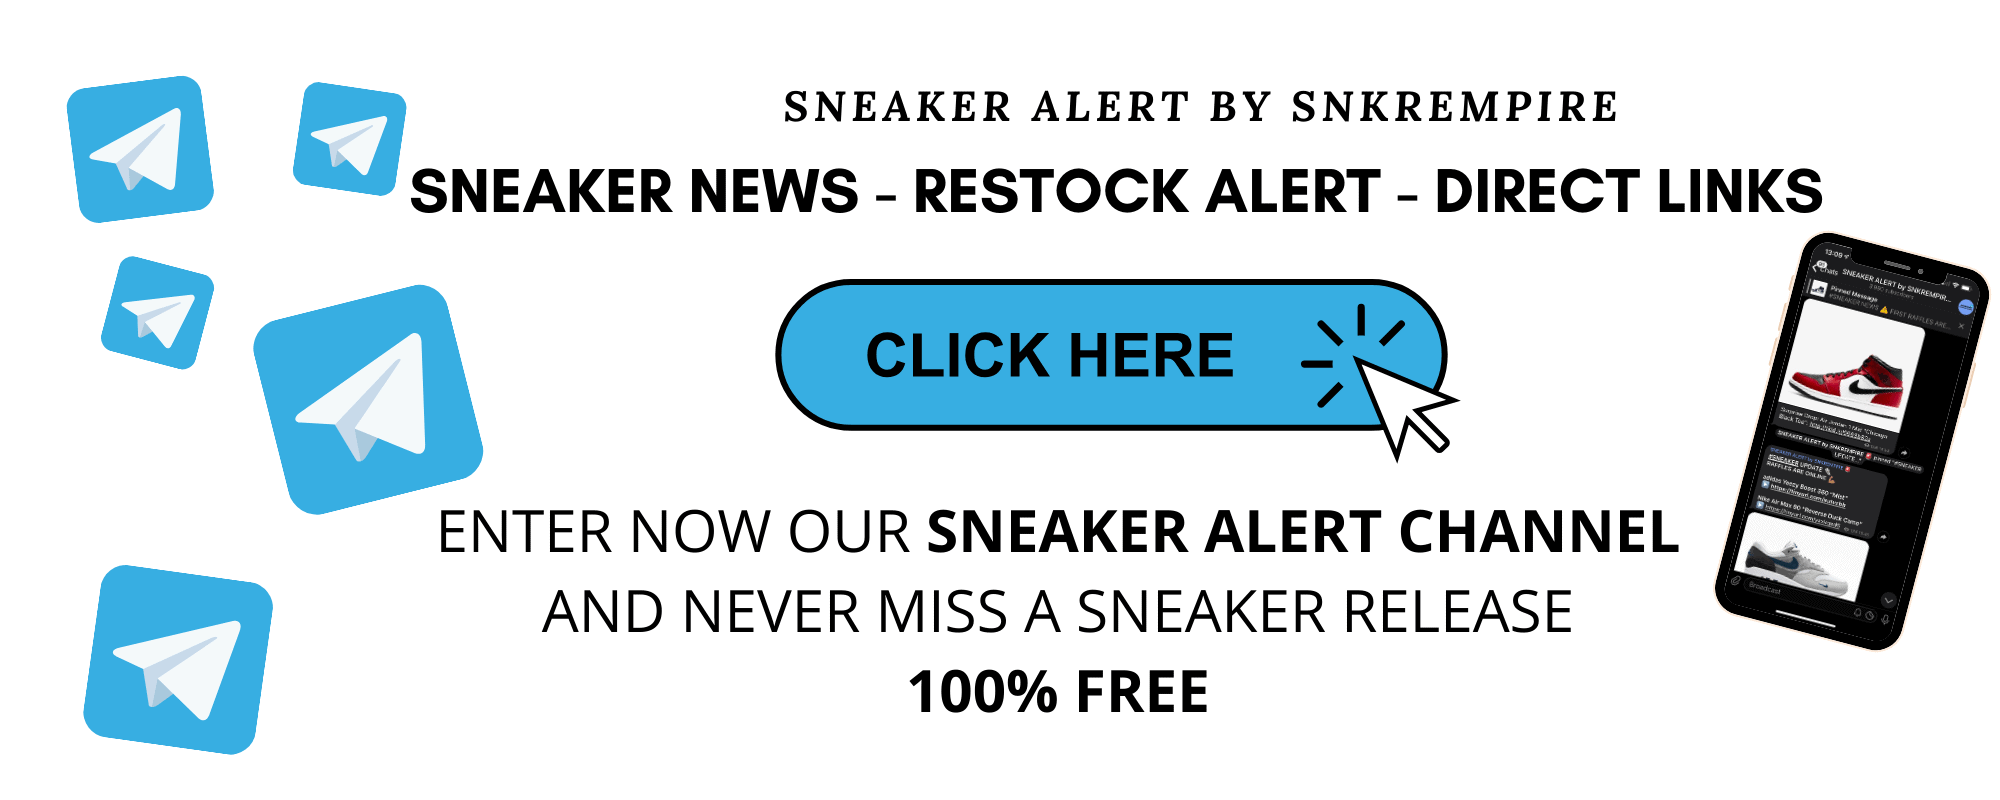 Kopie von SNEAKER NEWS - RESTOCK ALERT - DIRECT LINKS-4